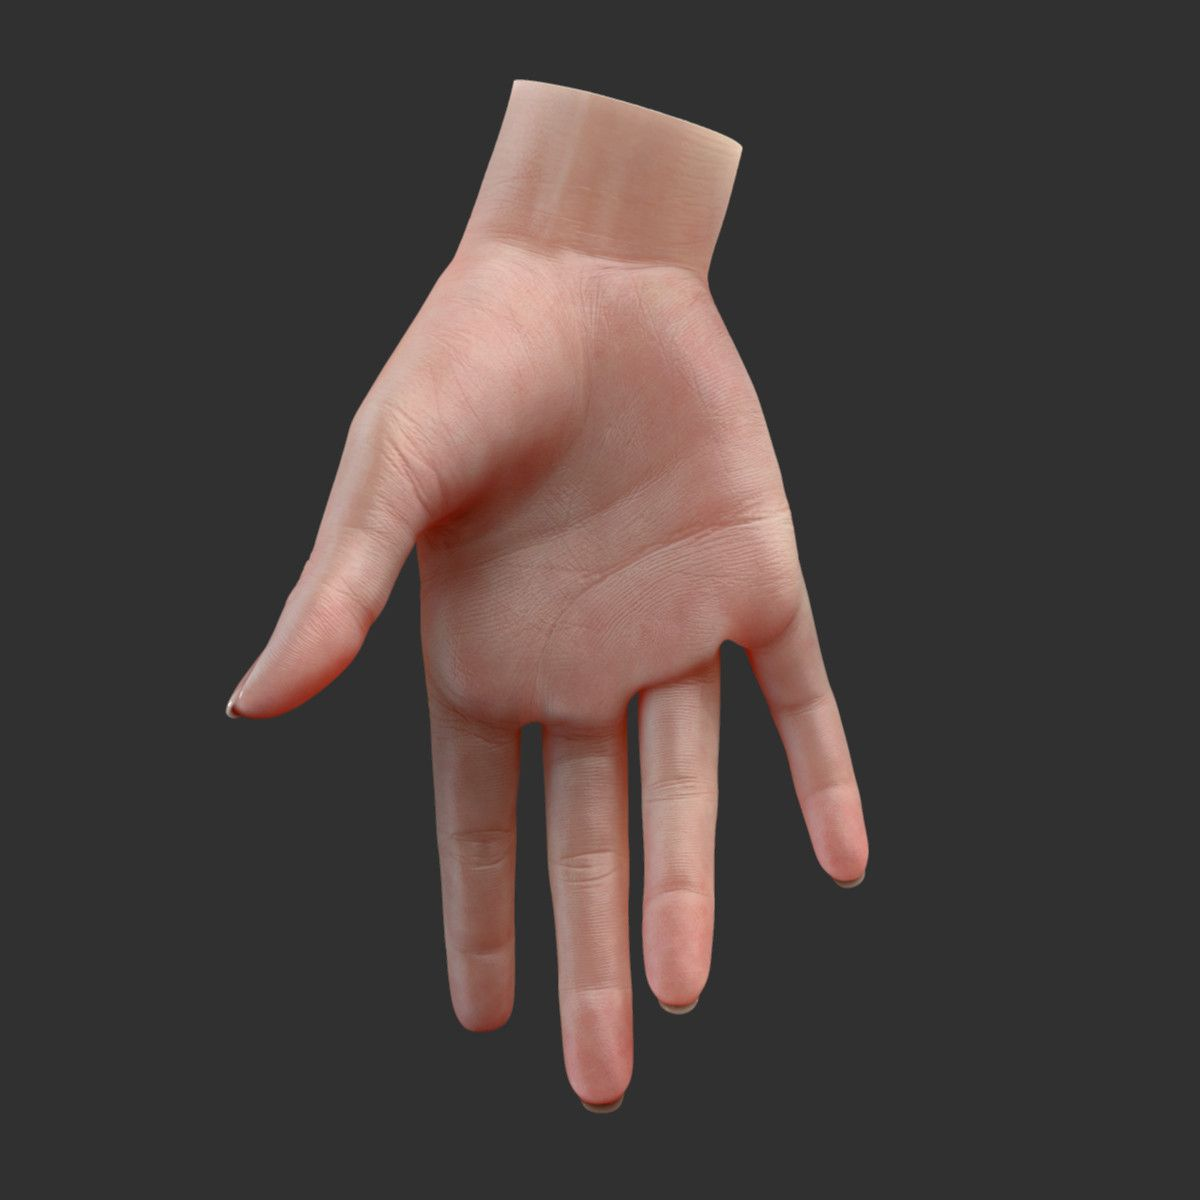 waldo-pack 3d porn 2 3d realistic female hand rigged | Hands | Pinterest | 3d, Hands and Models